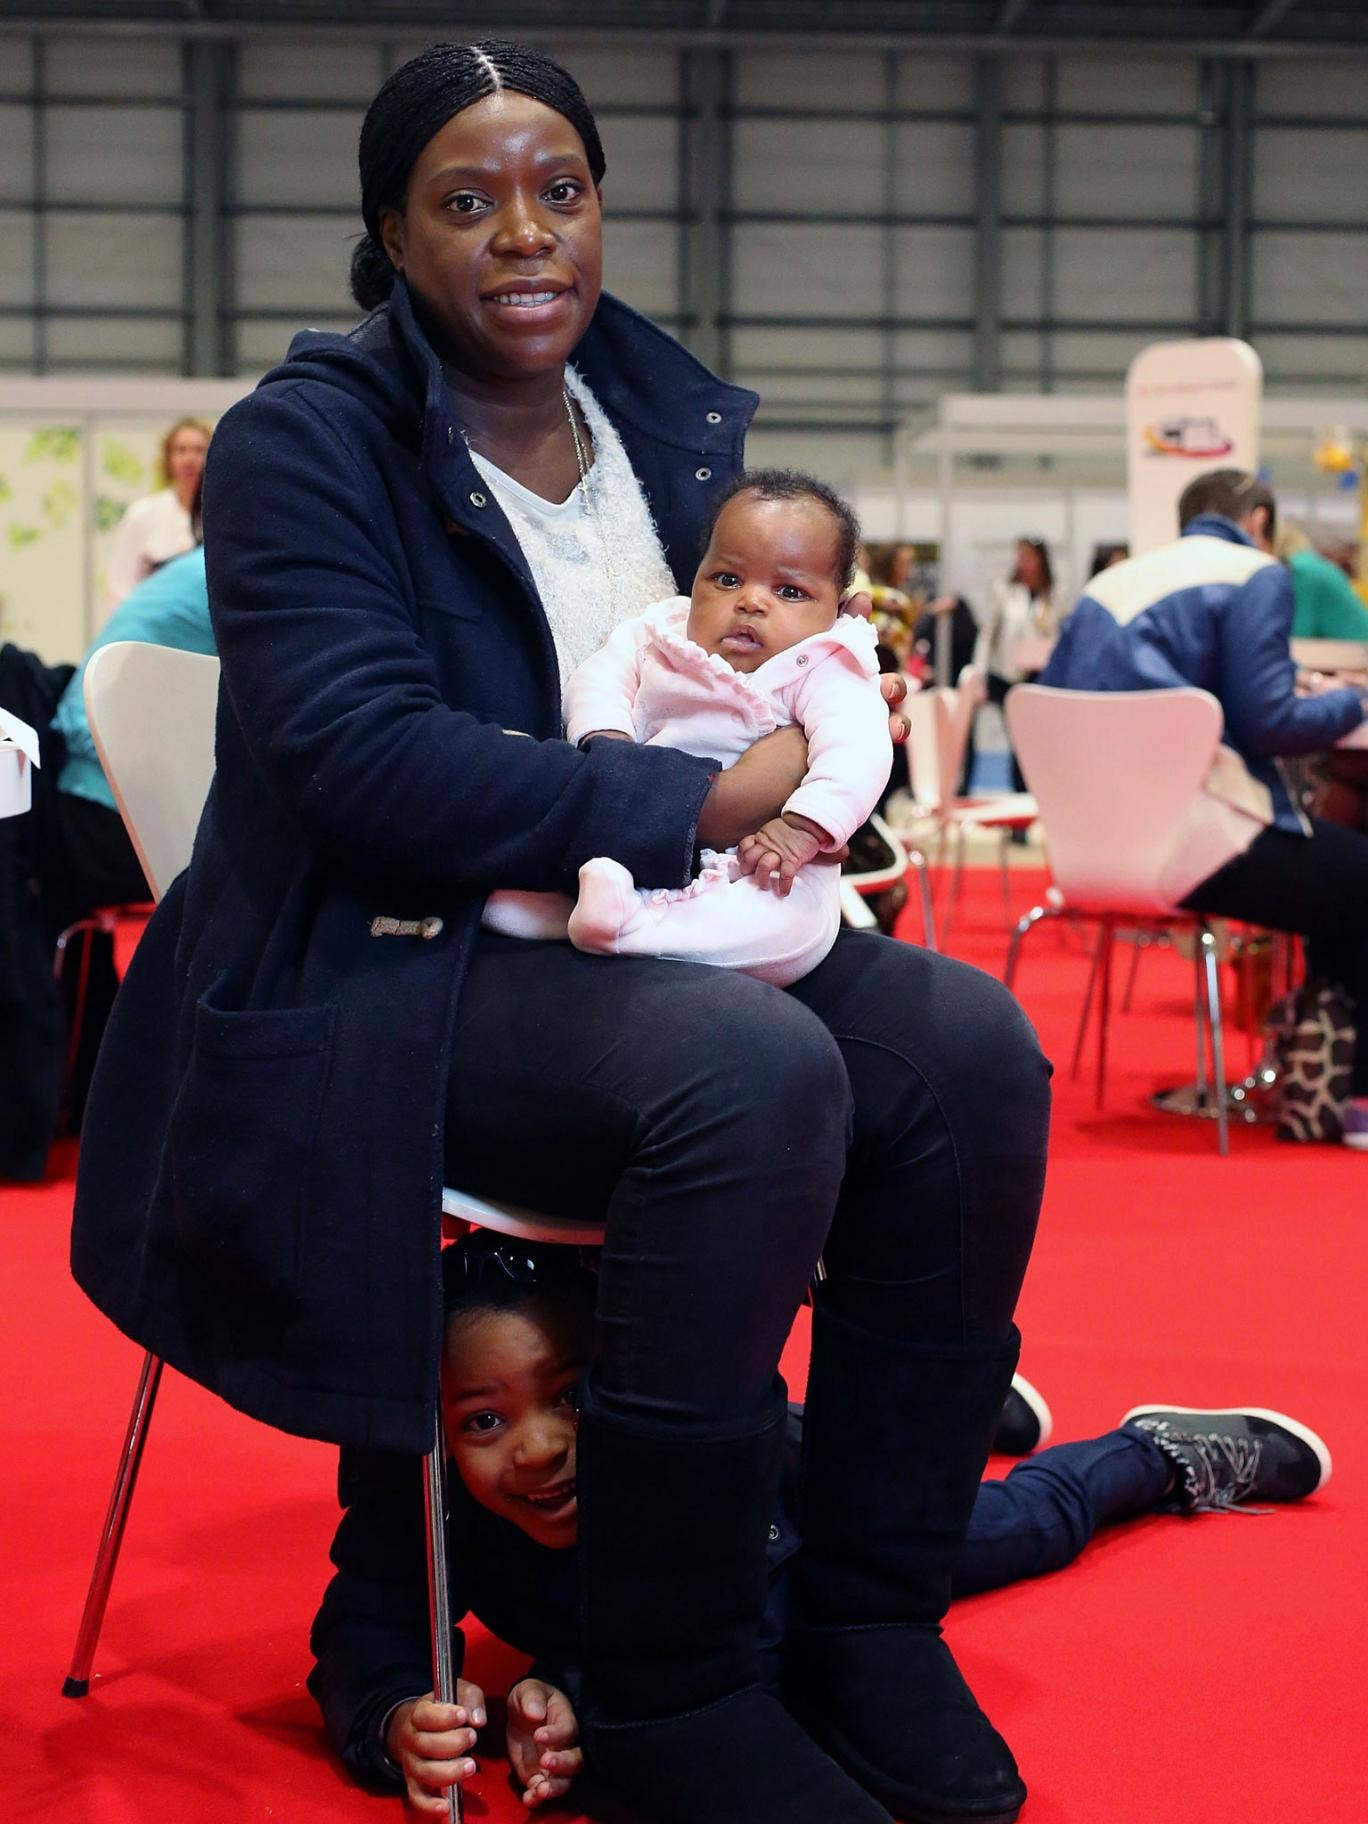 Jeanne Badinge, 30, with her children Thierry, four, and Celine, one month, at the work and parenting show